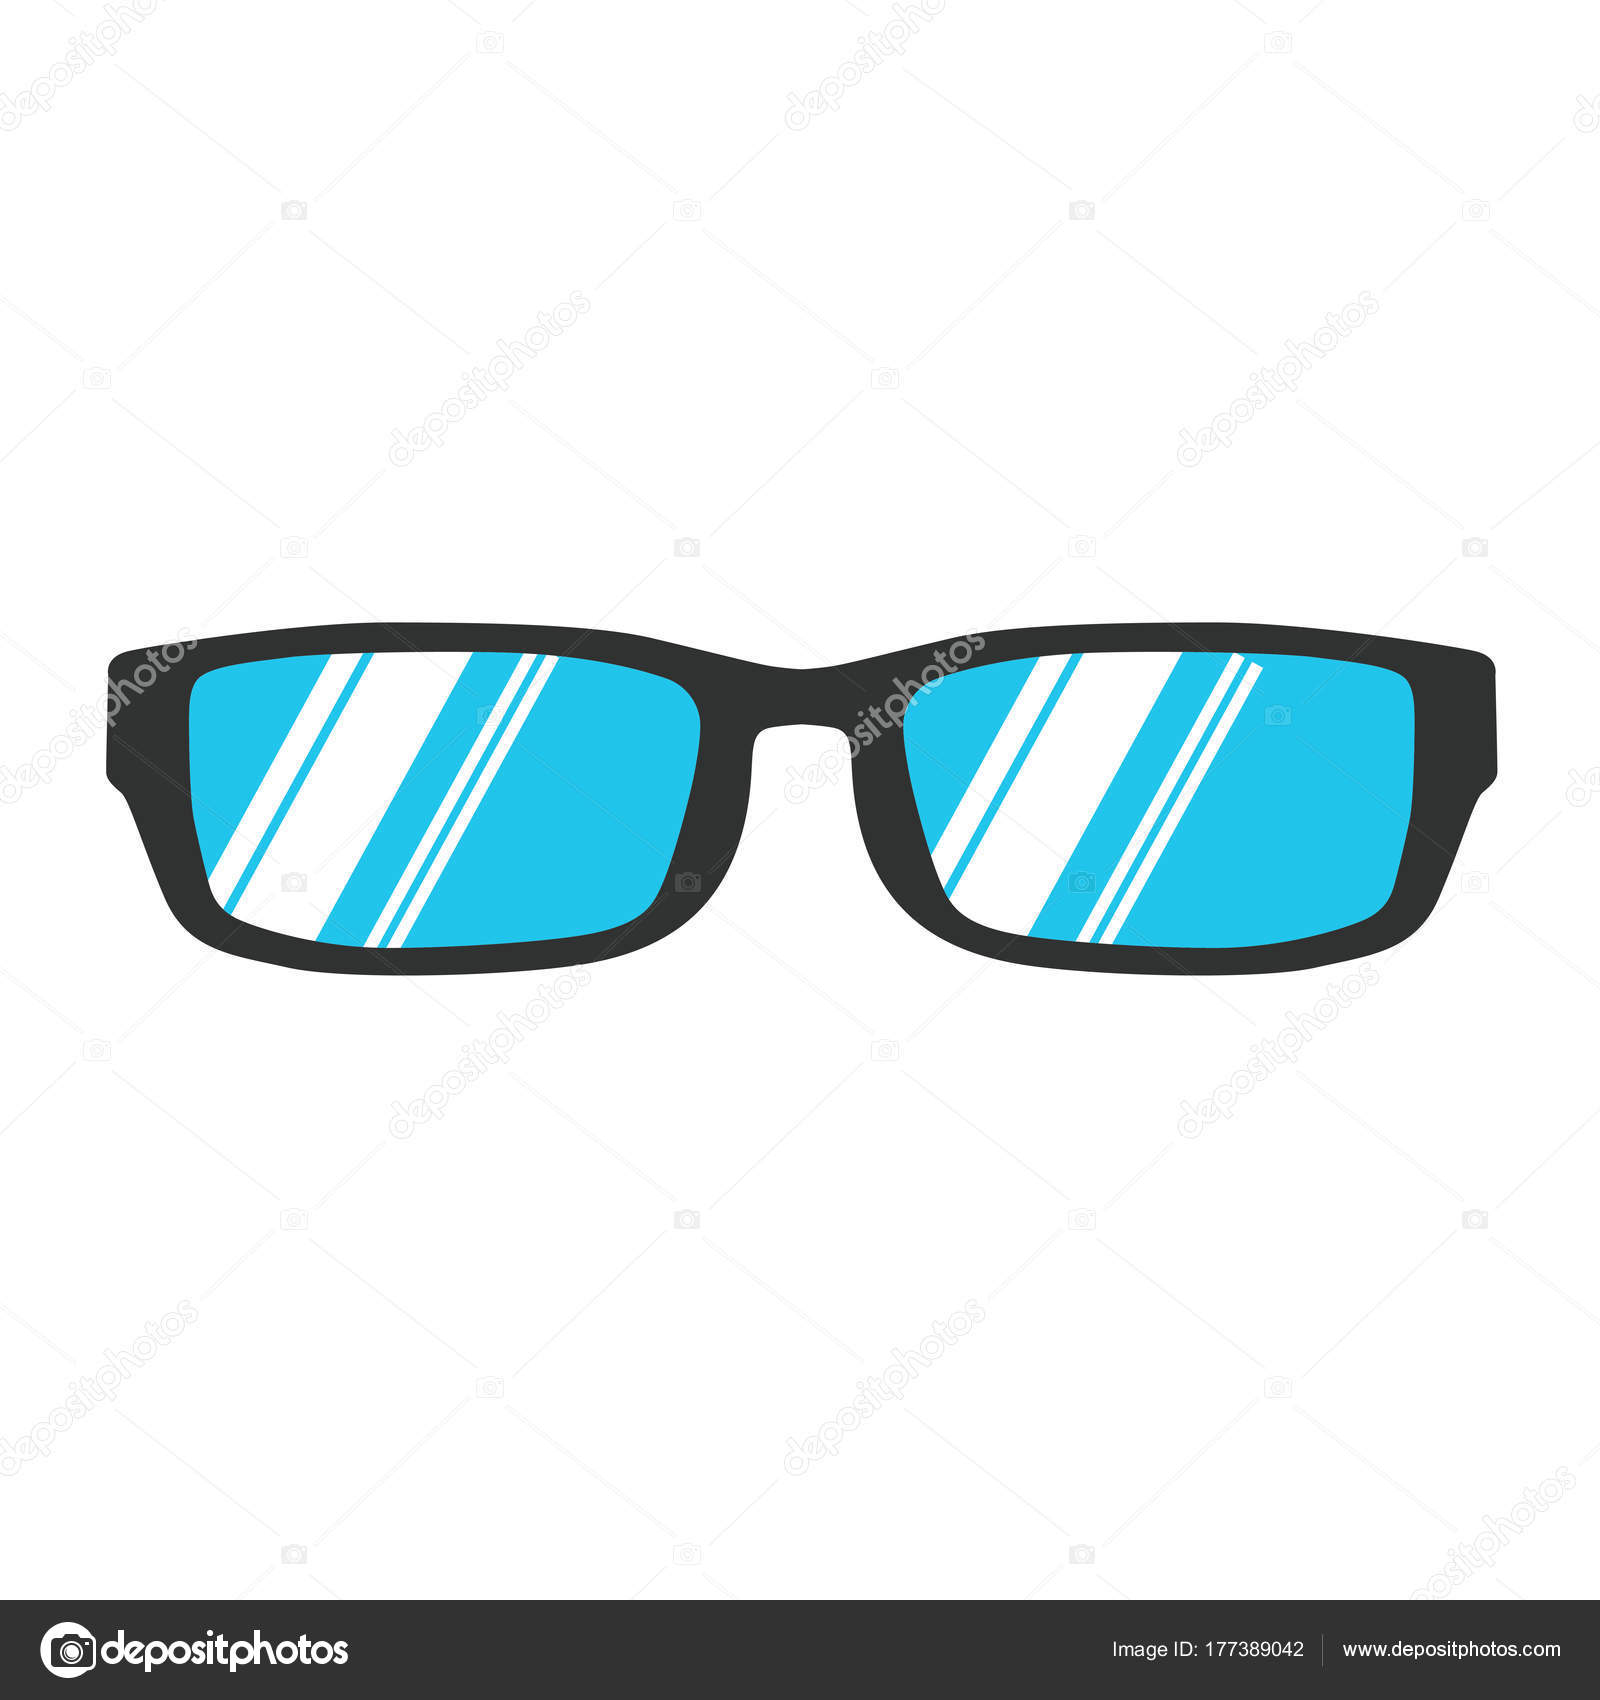 Brille lesen Symbol Vektor Illustration isoliert Auge. Blackstyle ...